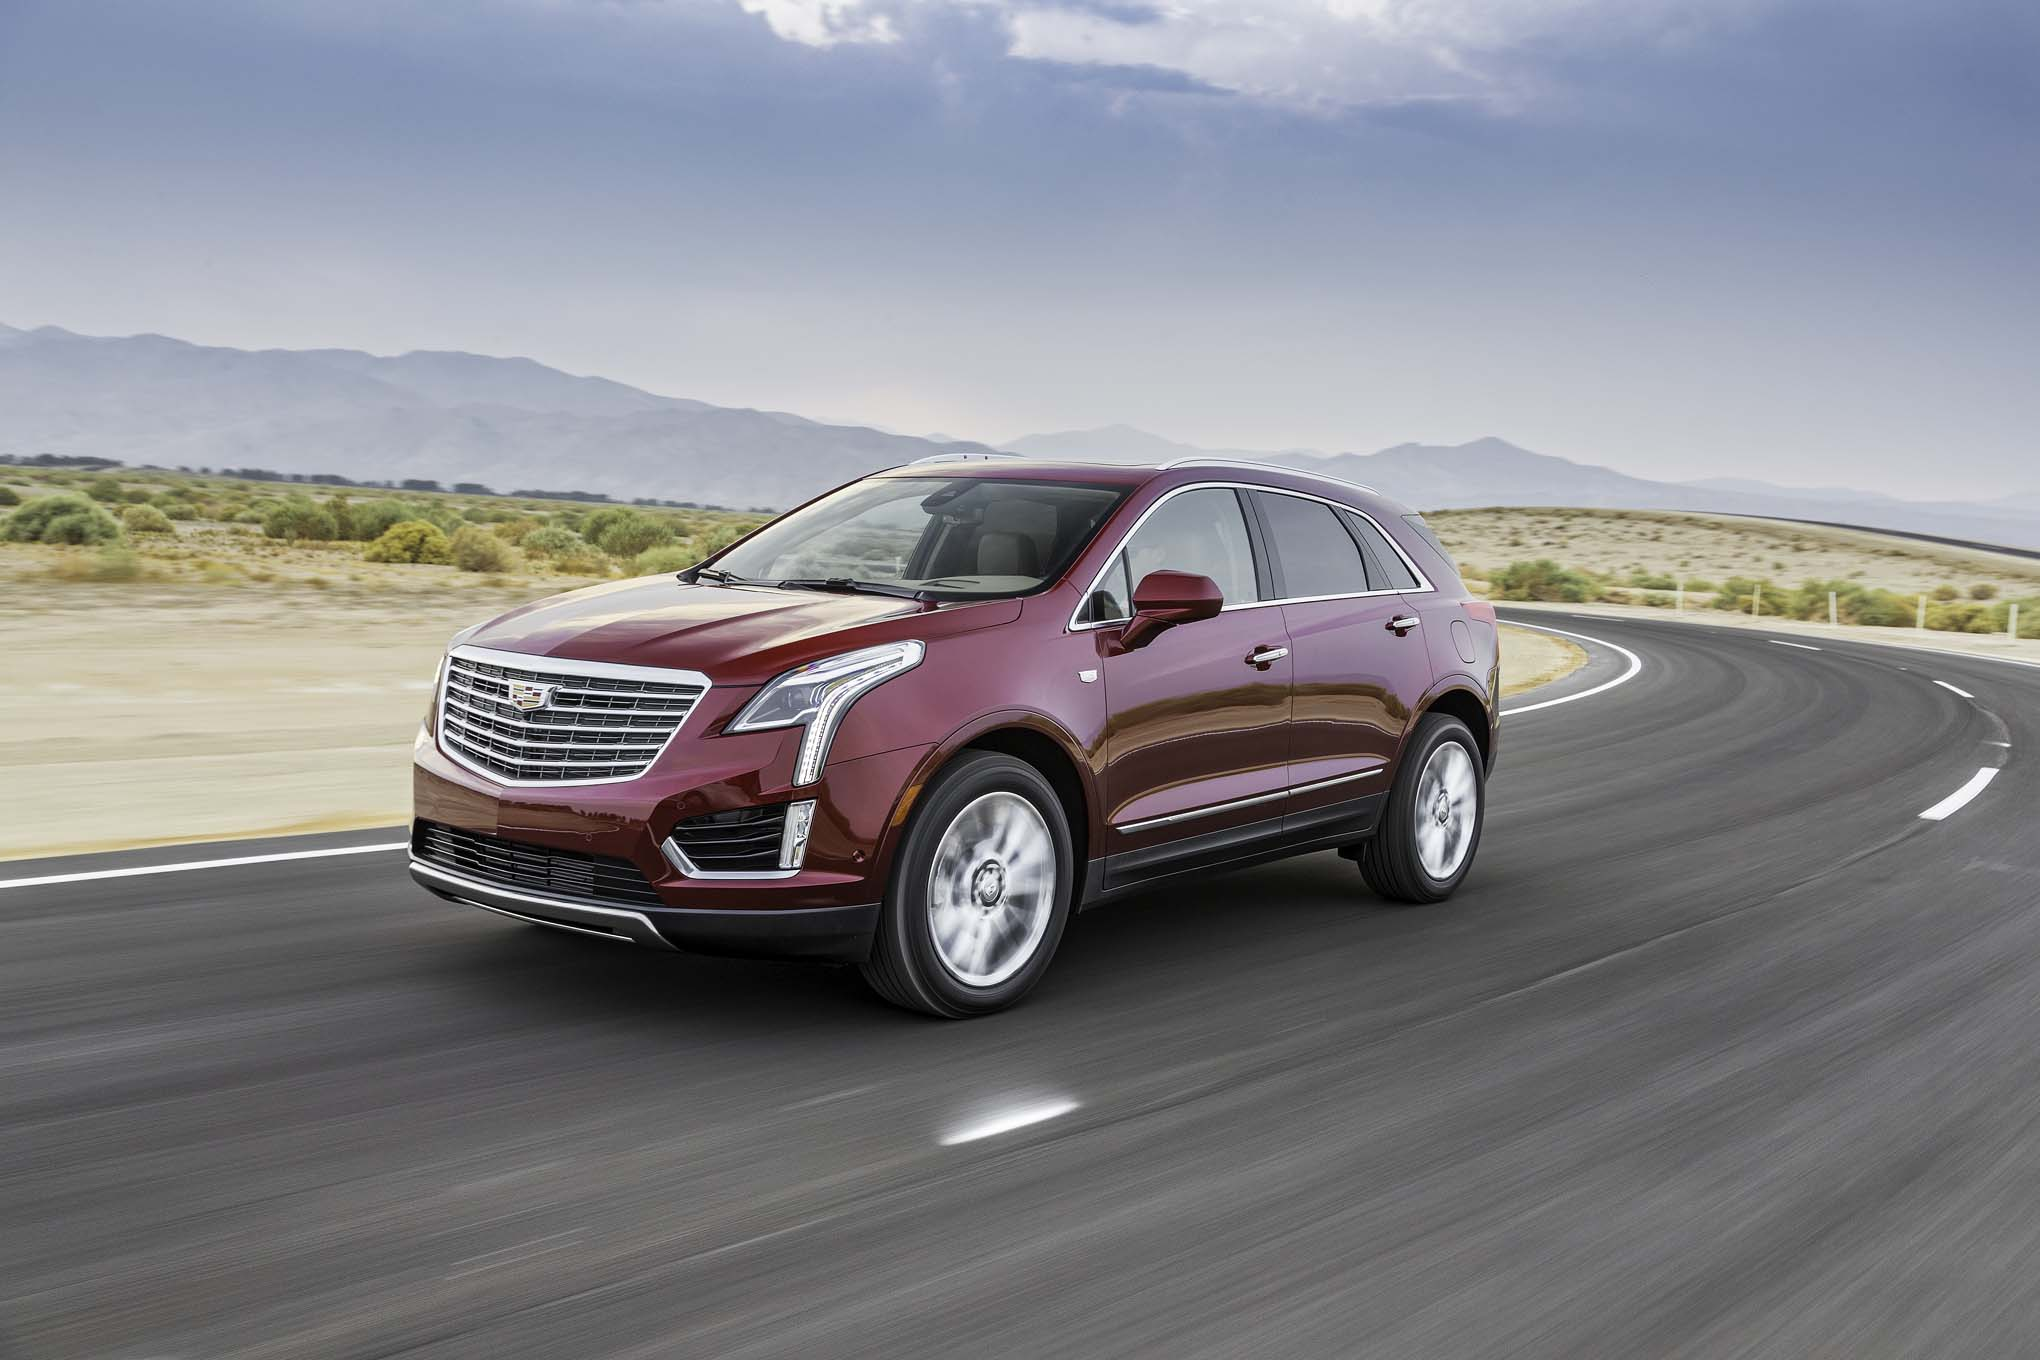 2017 Cadillac XT5 AWD Front Three Quarter In Motion